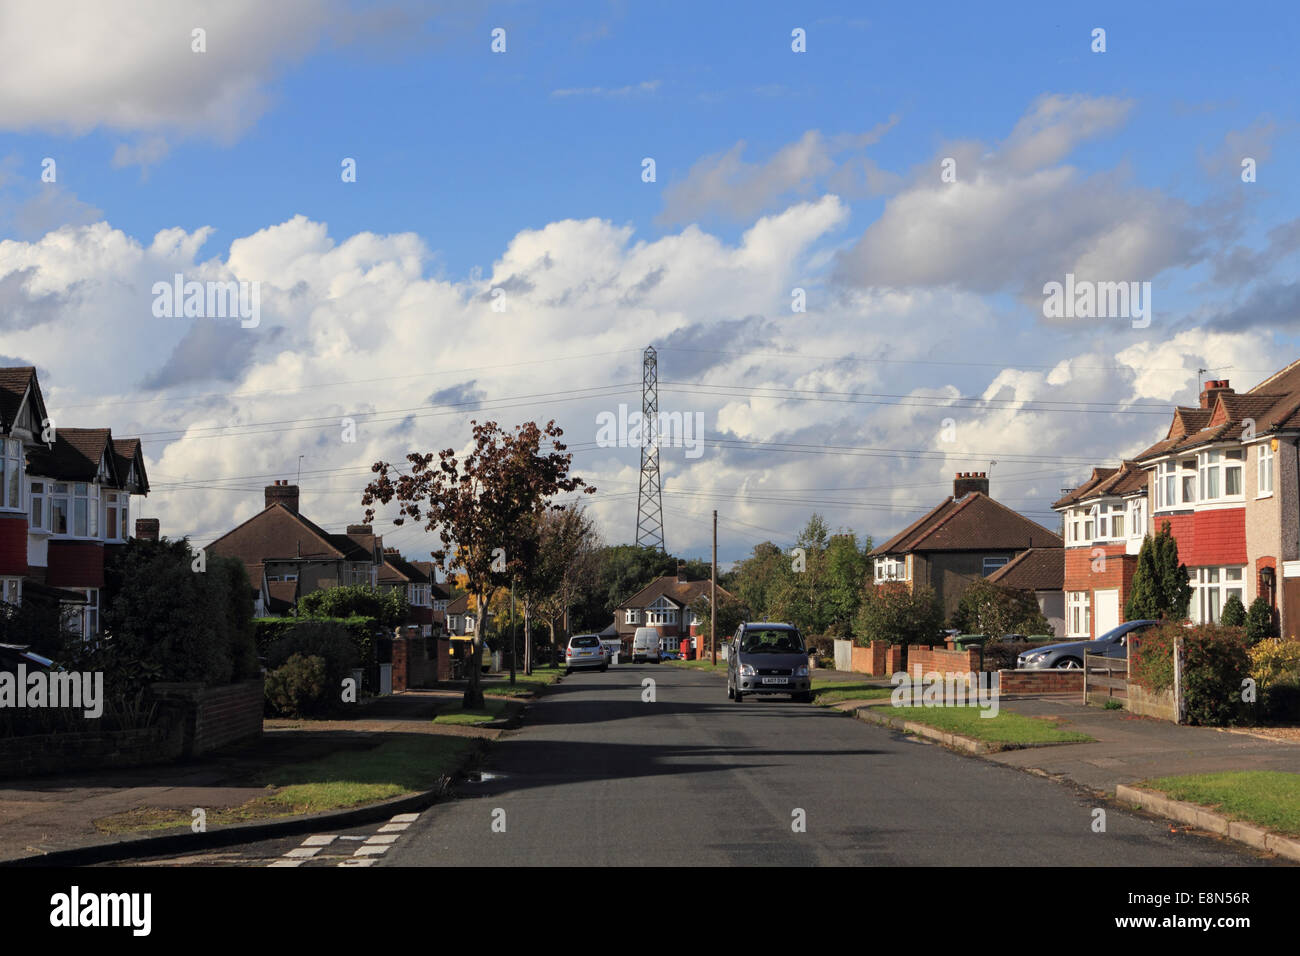 Epsom, Surrey, UK. 11th October 2014. Blue skies alternate with dramatic cumulonimbus rain clouds over this residential - Stock Image